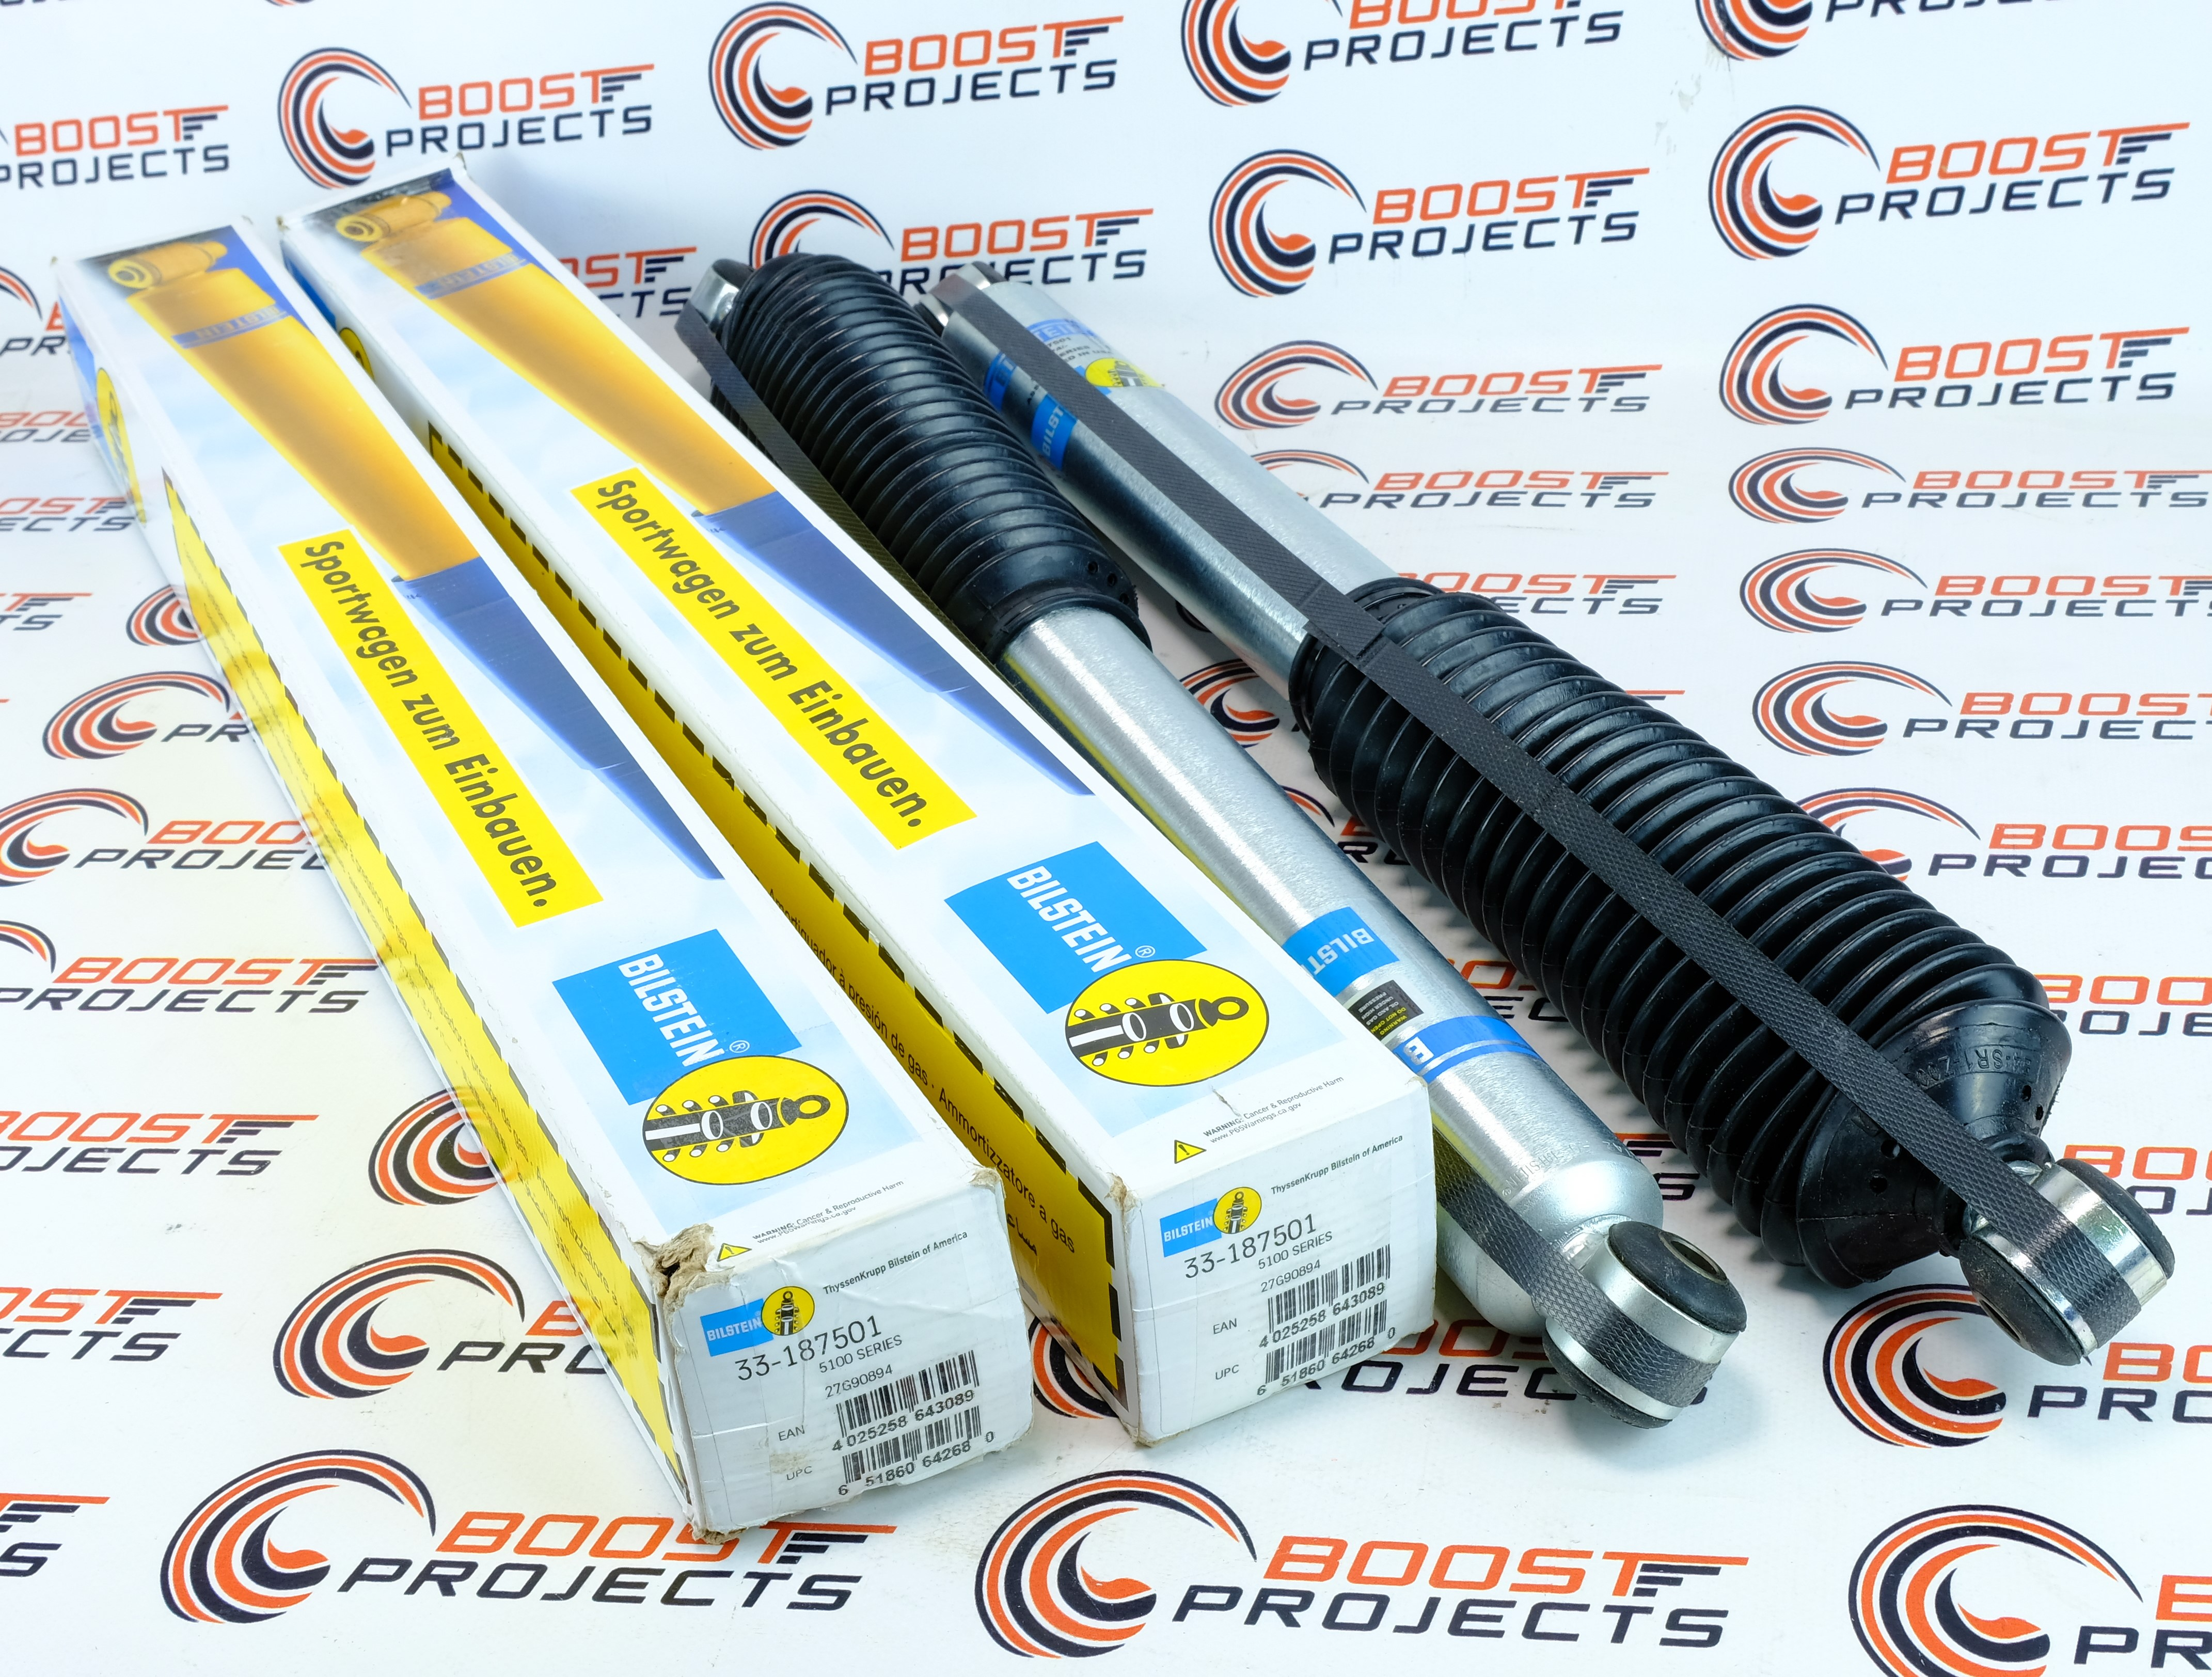 BILSTEIN for 2009-2013 Ford F-150 B8 5100 Series Shock Absorber Rear 33-187501